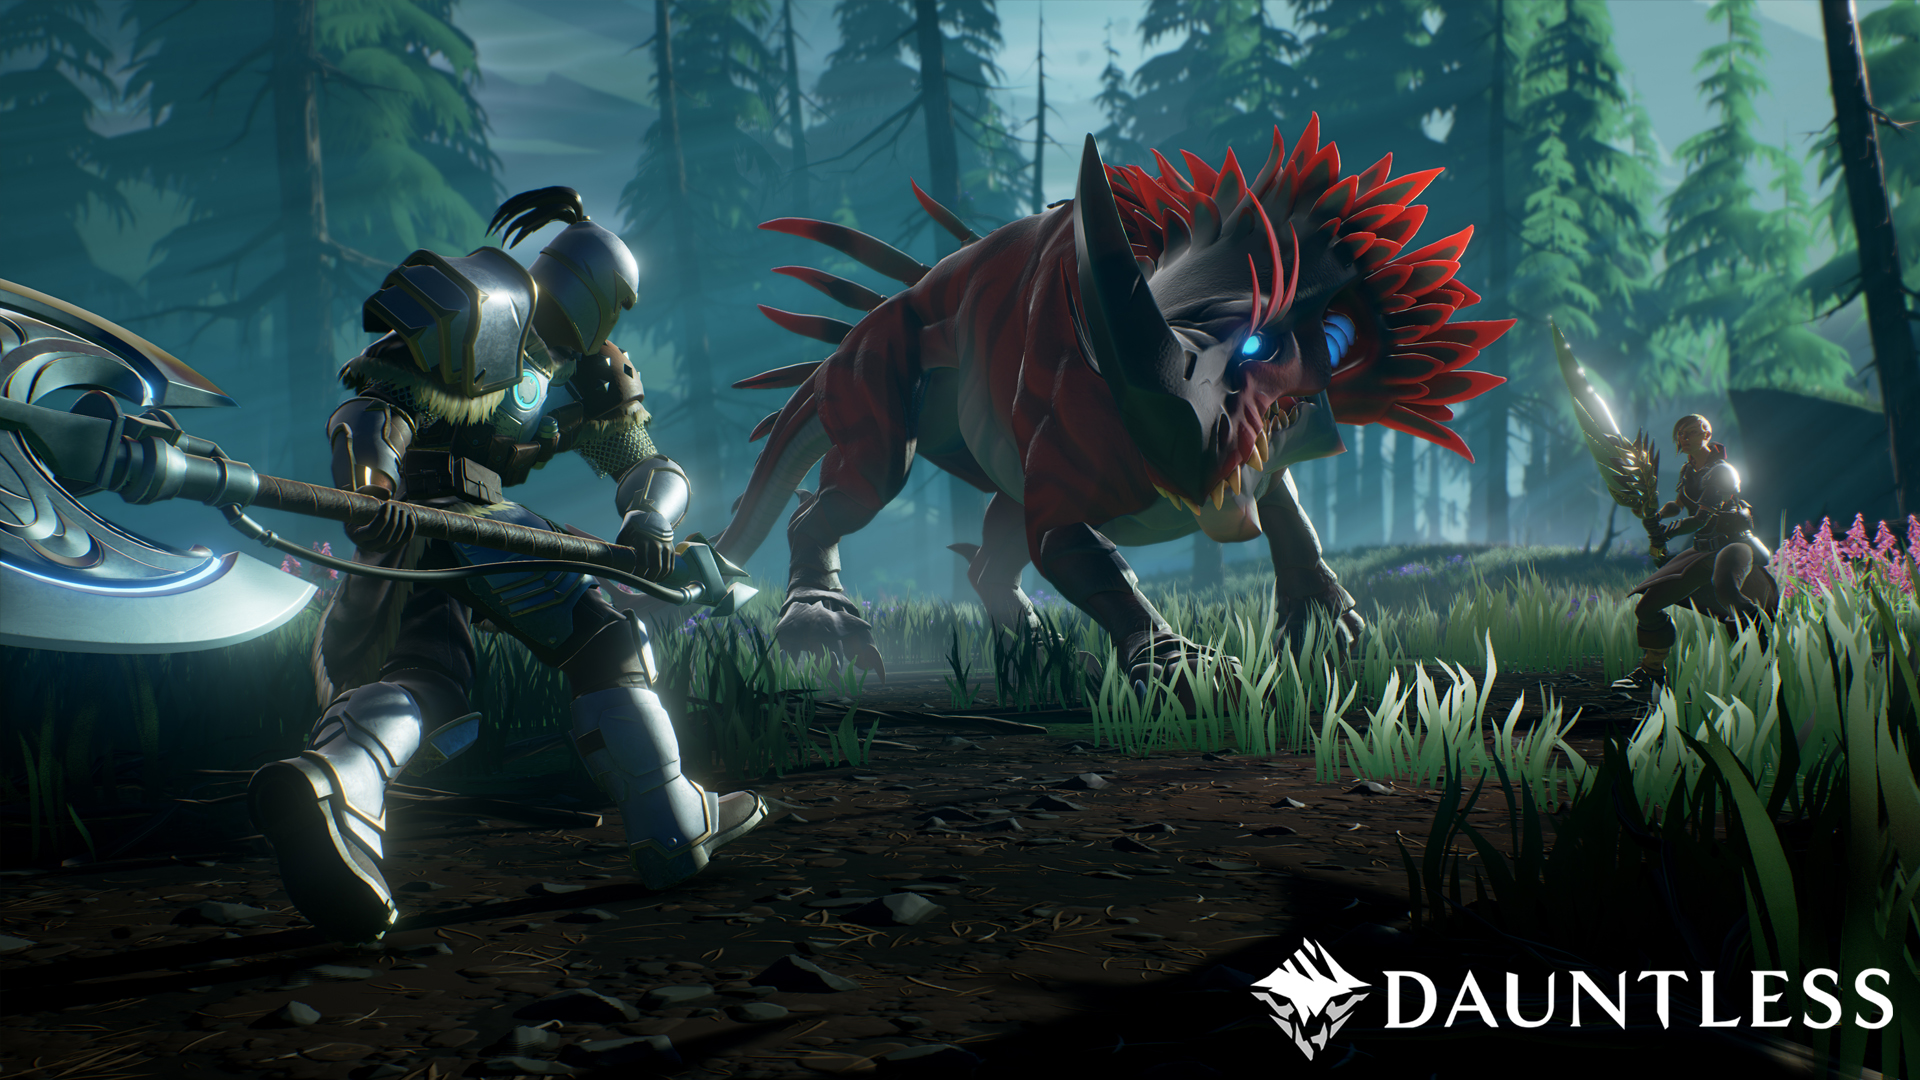 Dauntless Developer Preview Video Shows Off New Behemoths and Weapon